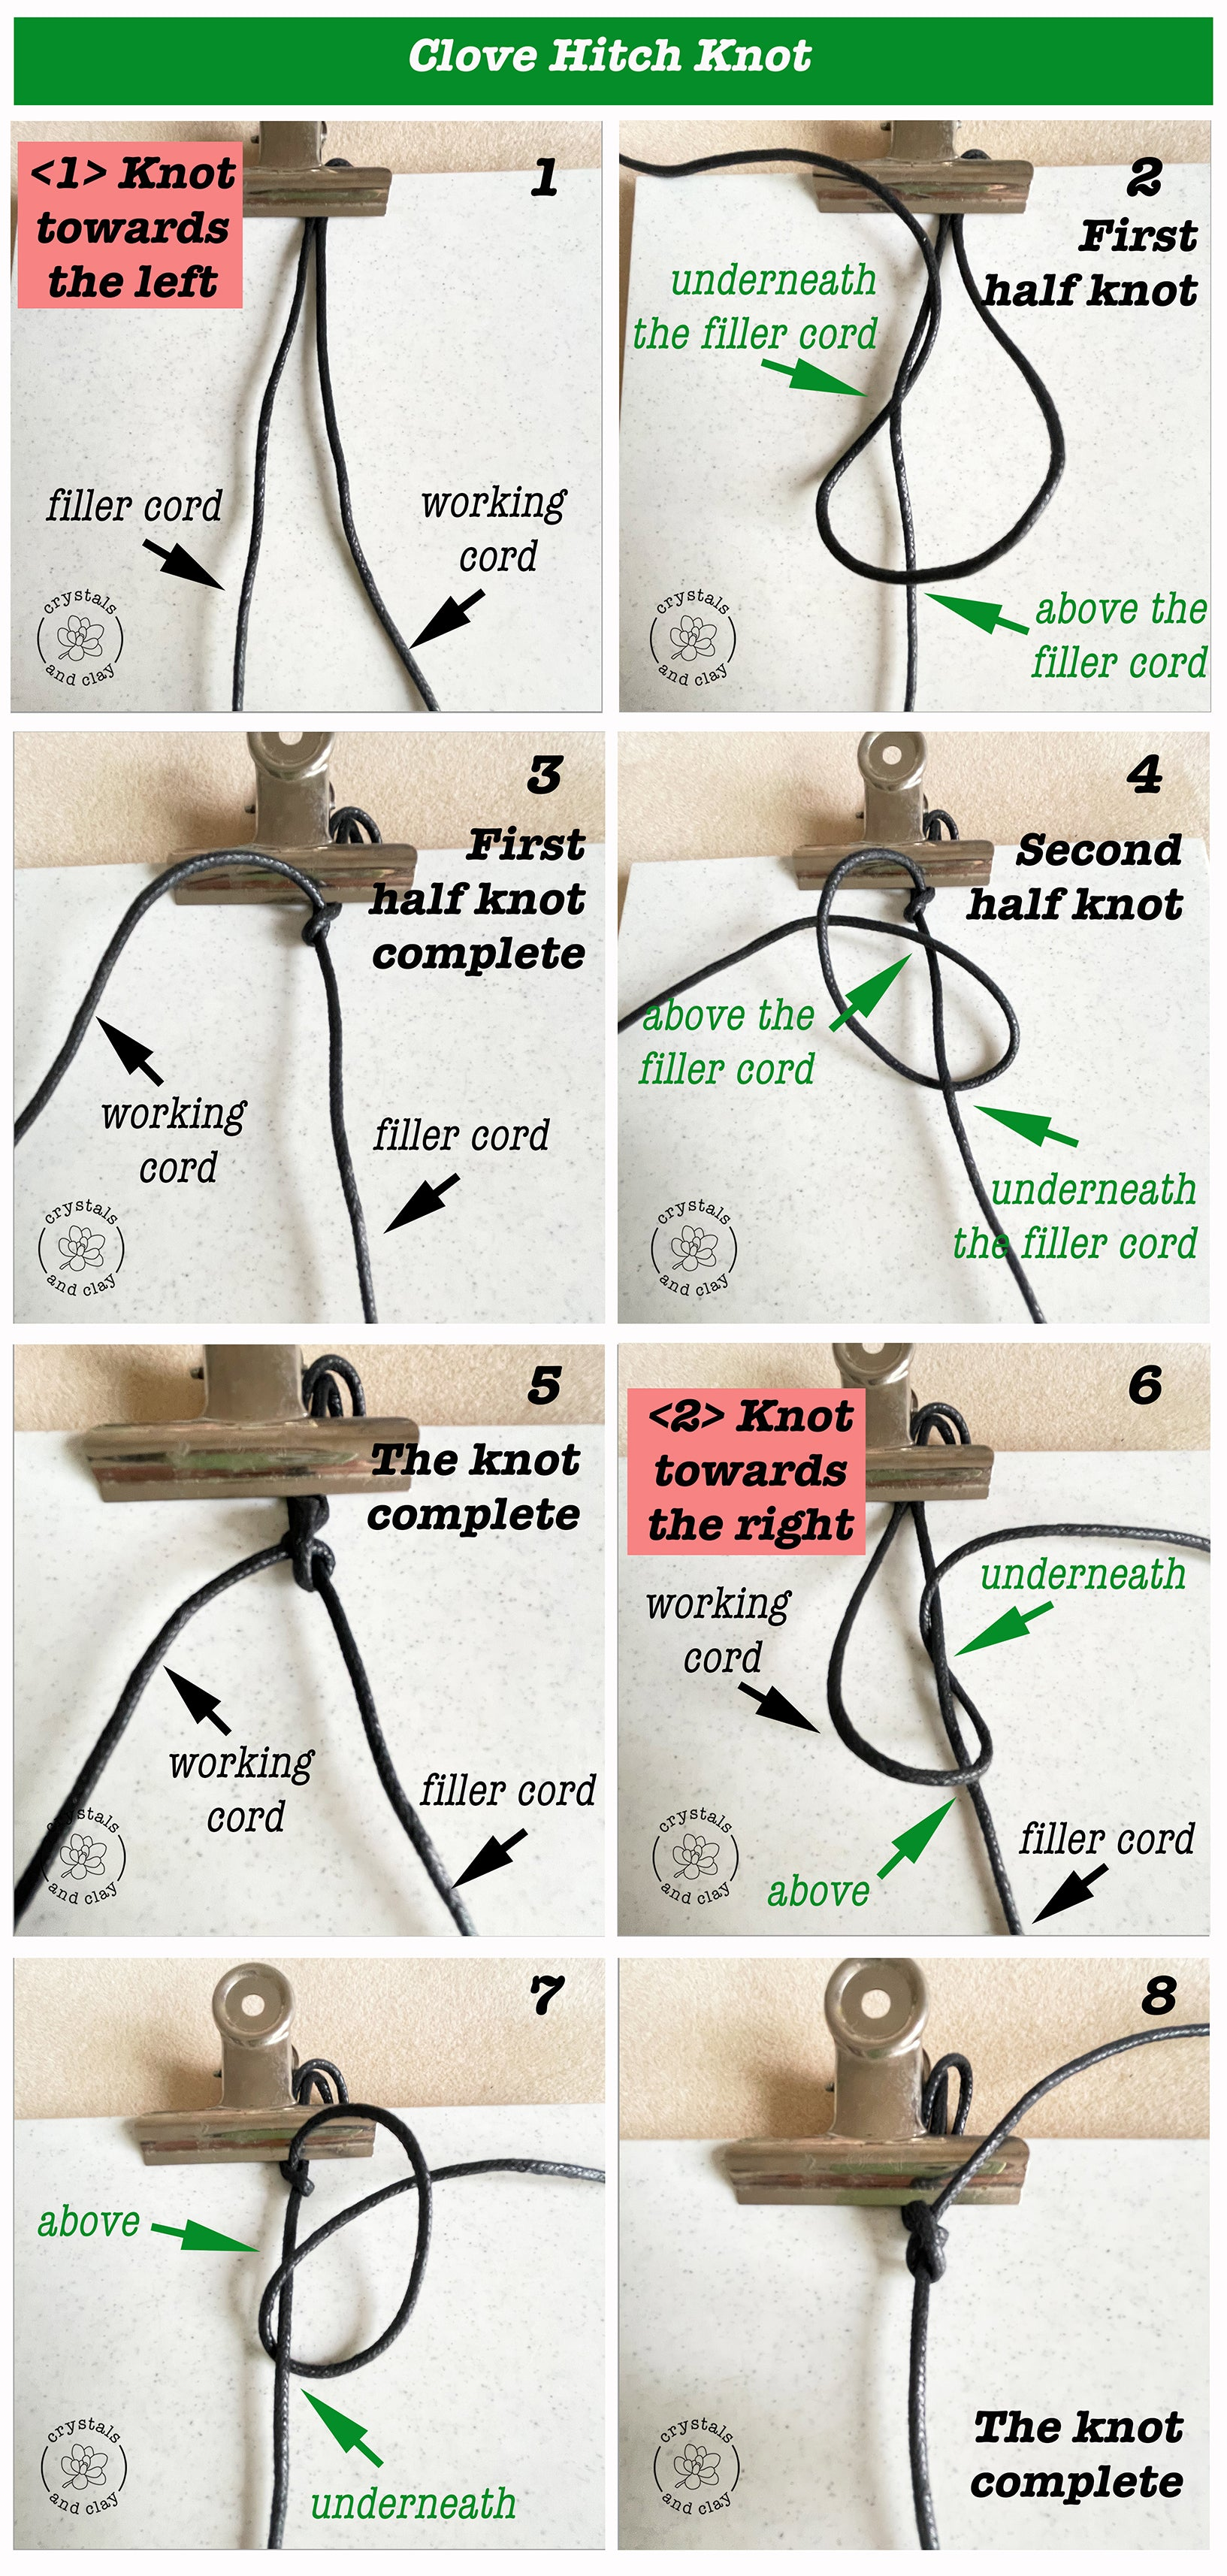 how to make clove hitch knot